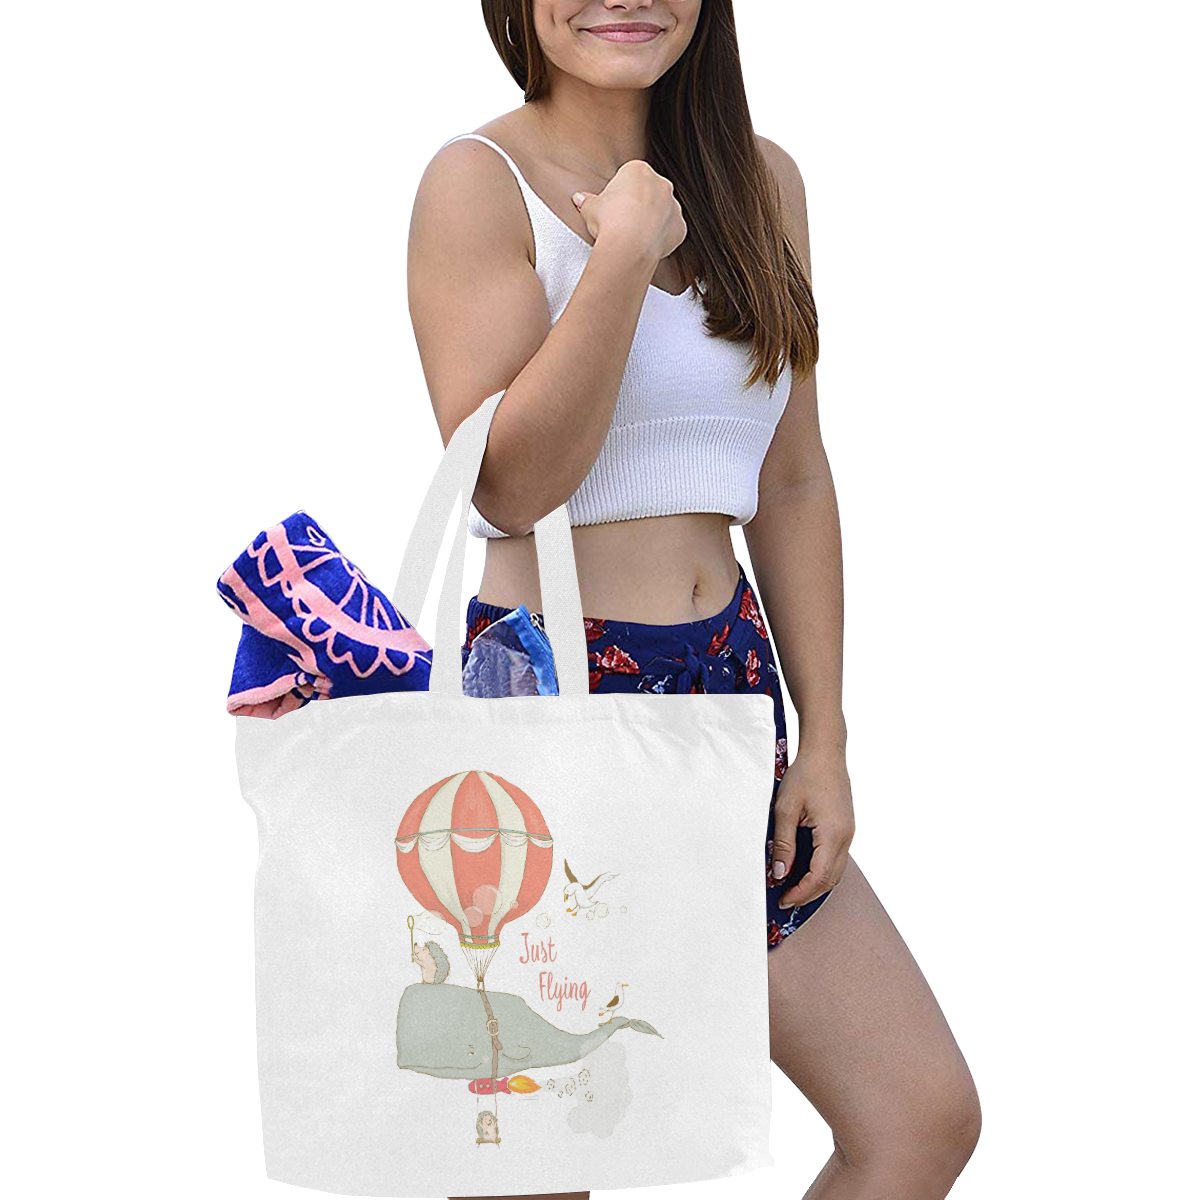 Just a flying Whale Canvas Tote Bag/Large (Model 1702)